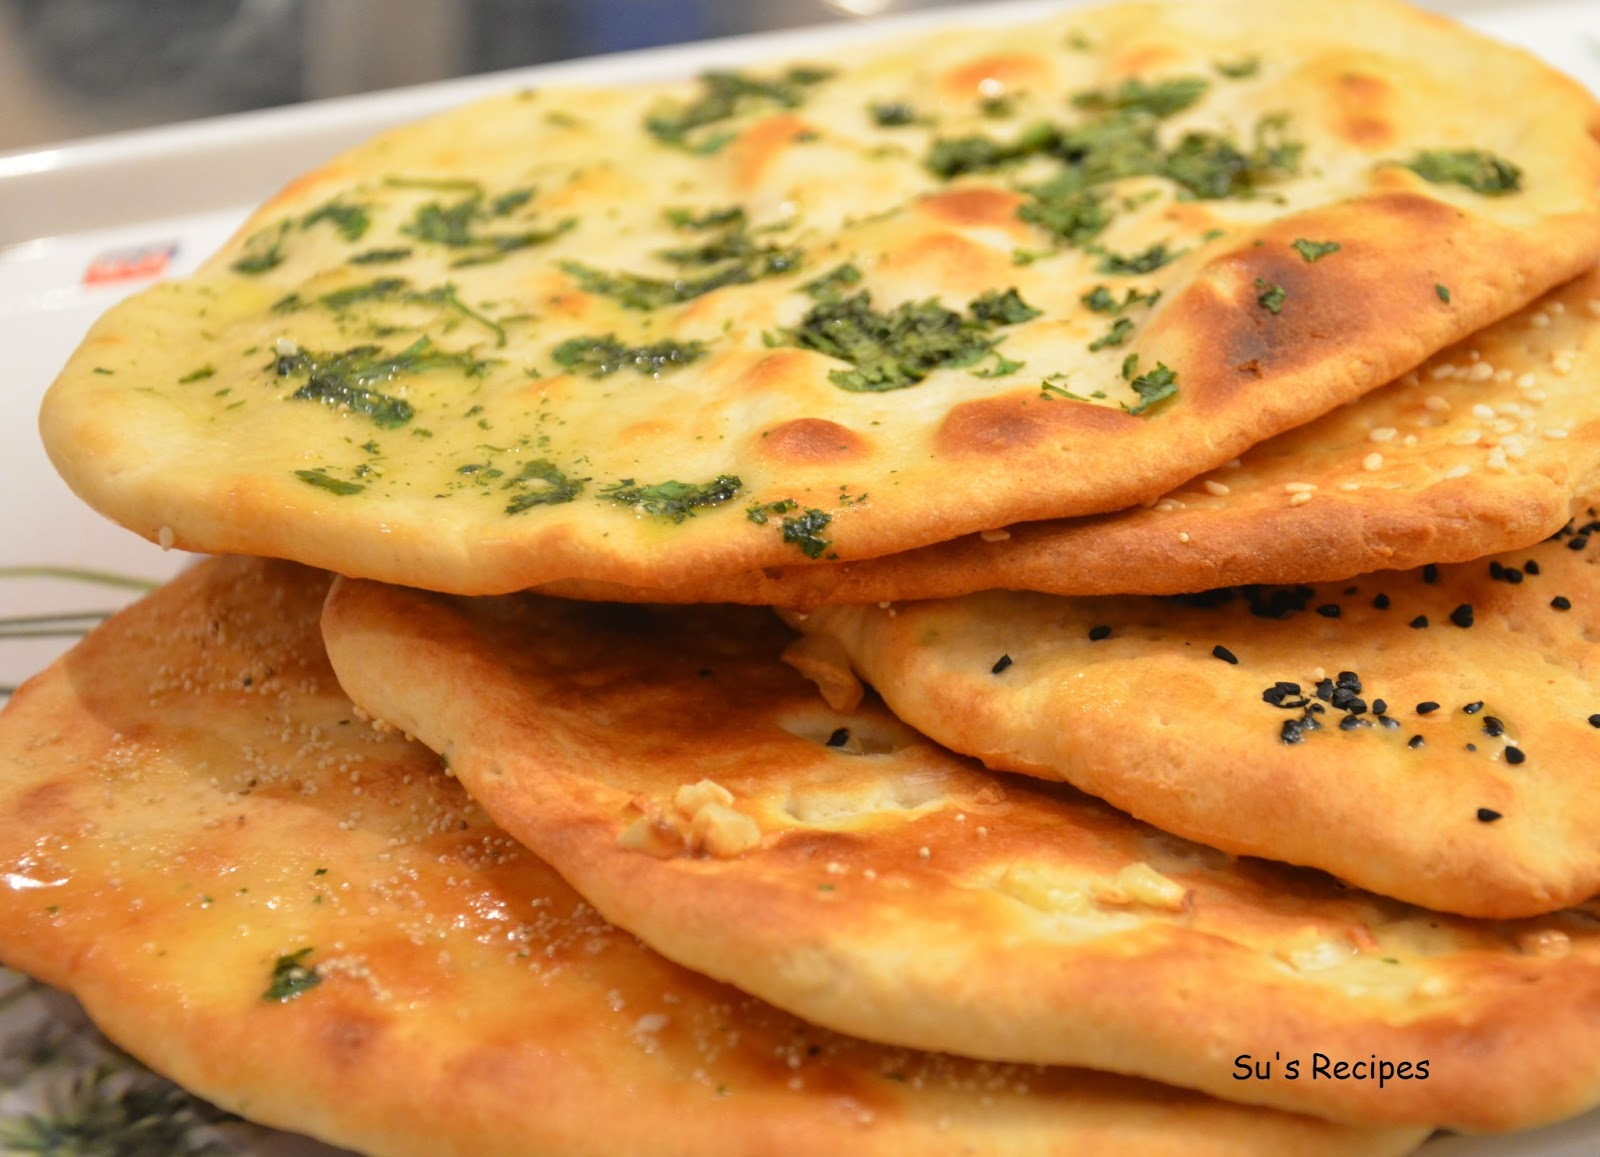 Su's Recipes: Naan - Indian Bread